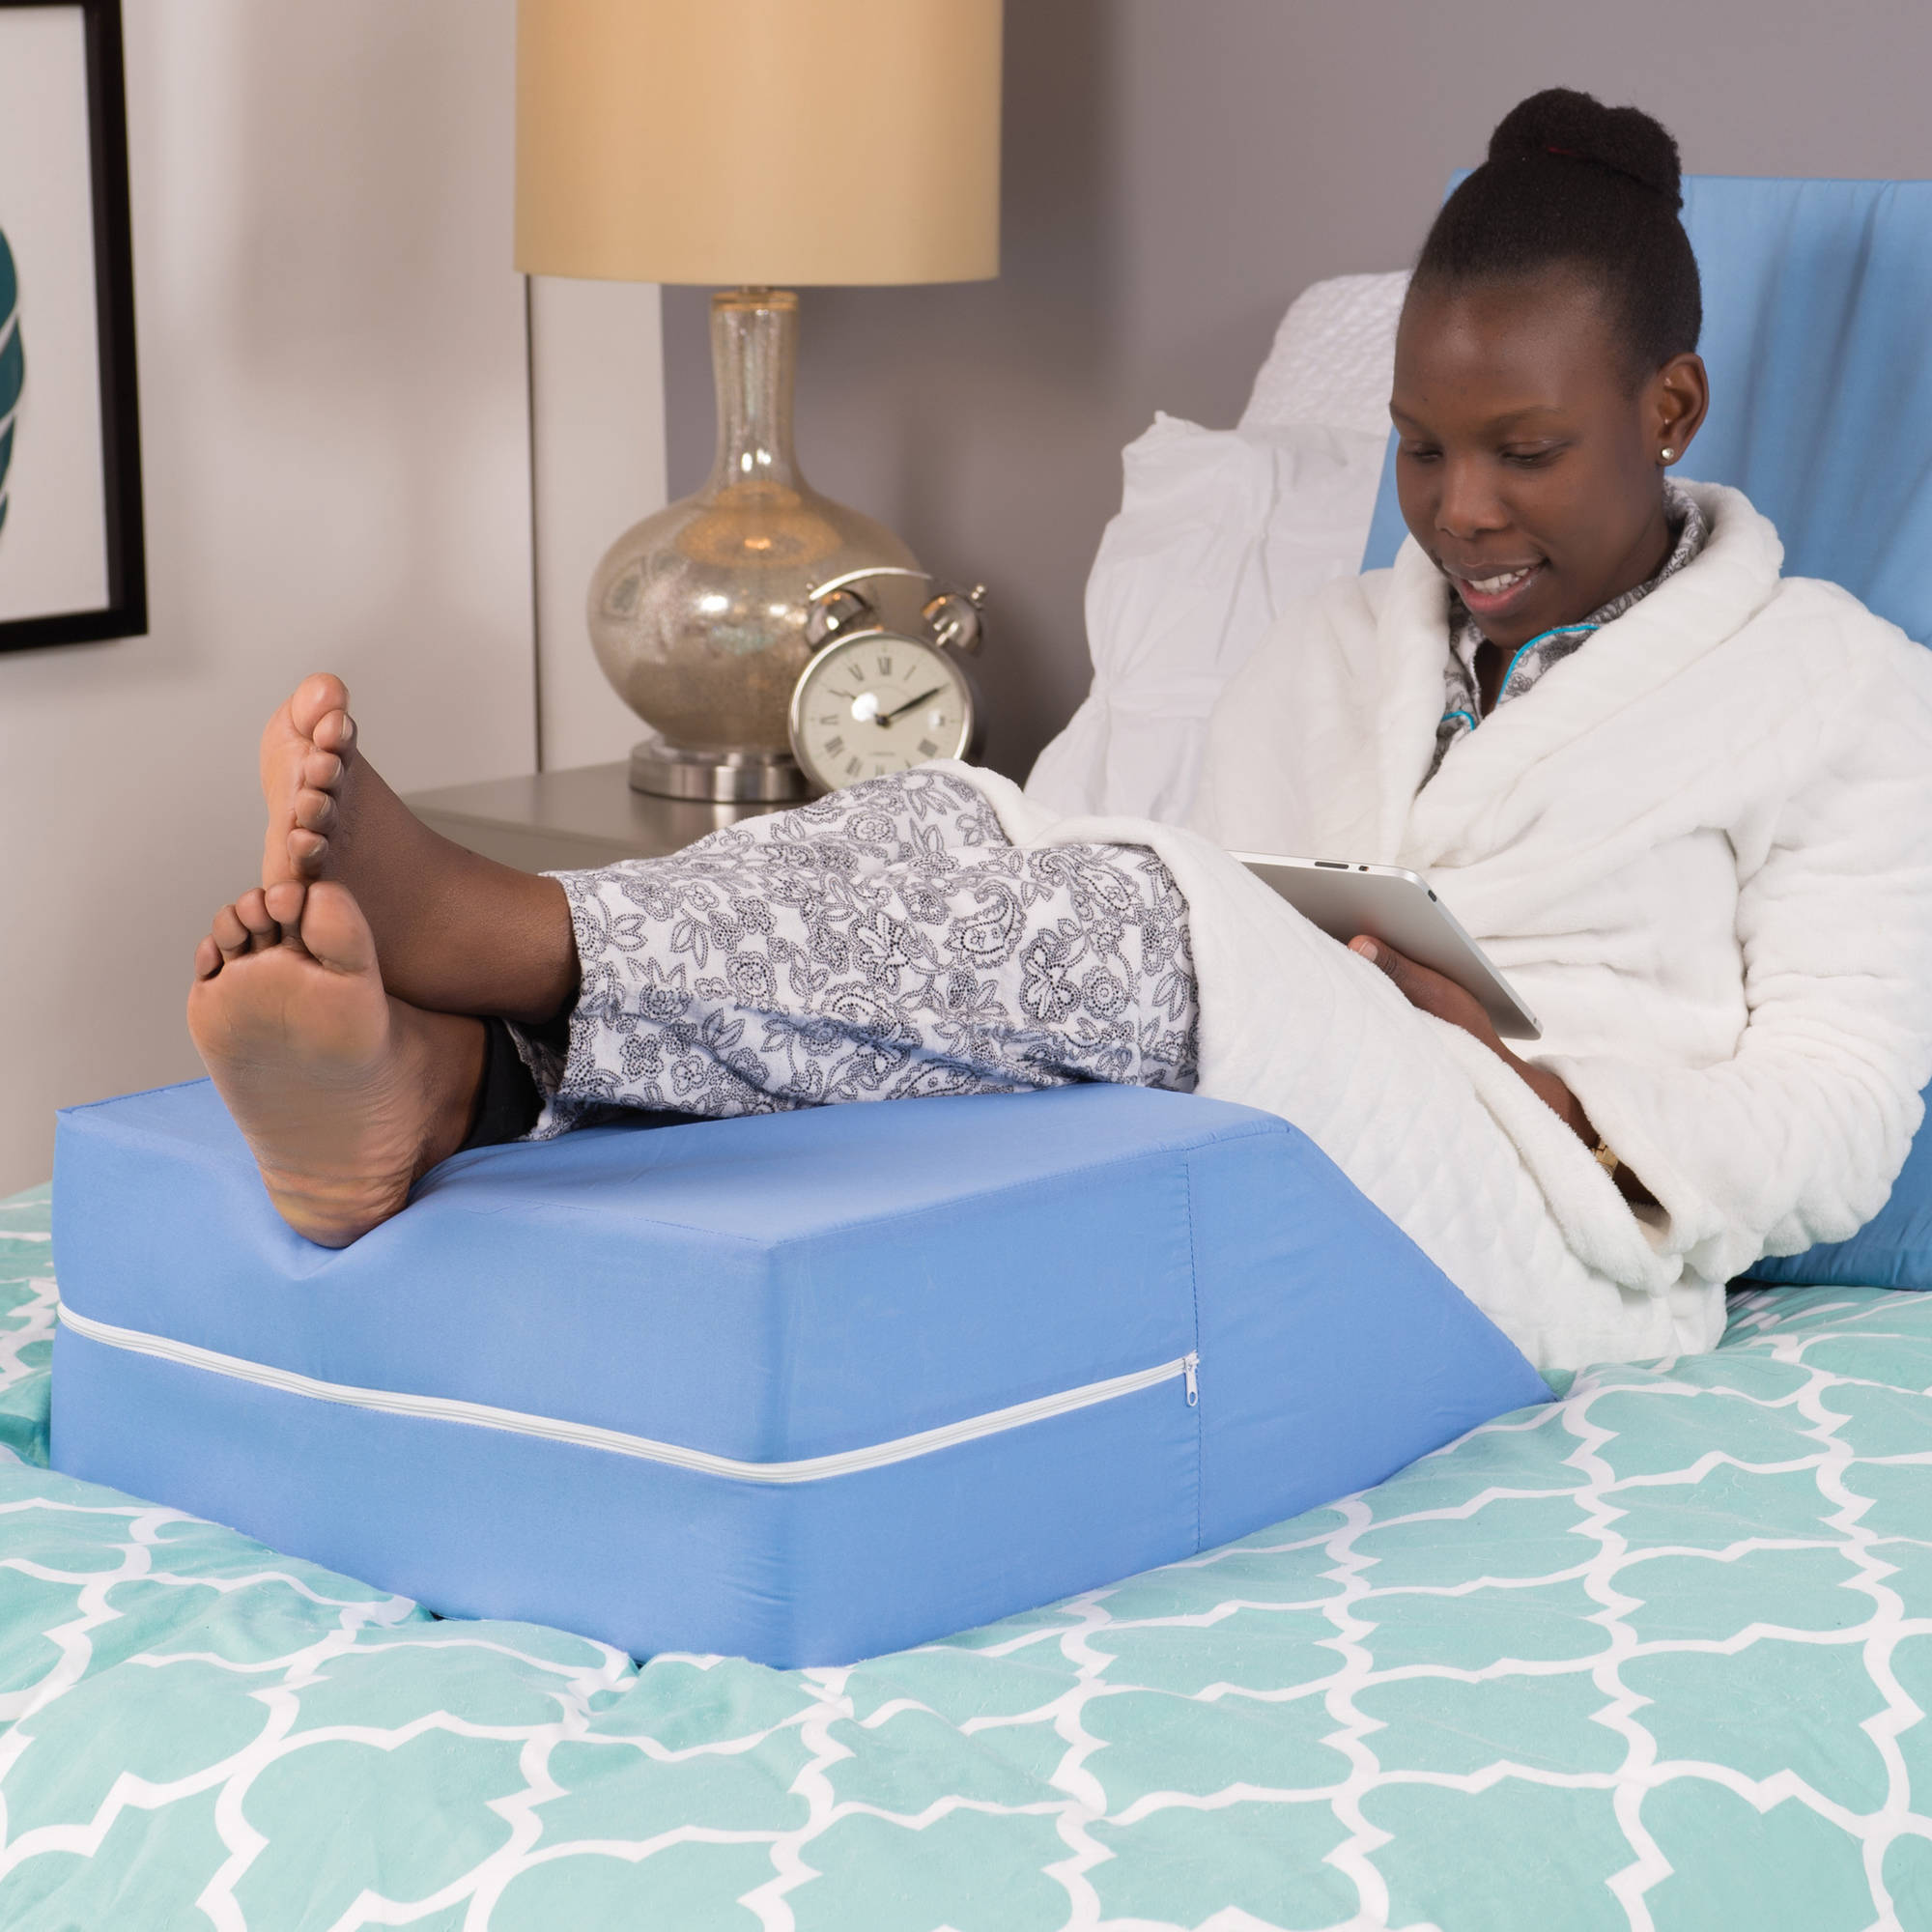 Bed wedge for legs - Dmi Ortho Bed Wedge Elevating Leg Rest Cushion Pillow Blue Walmart Com